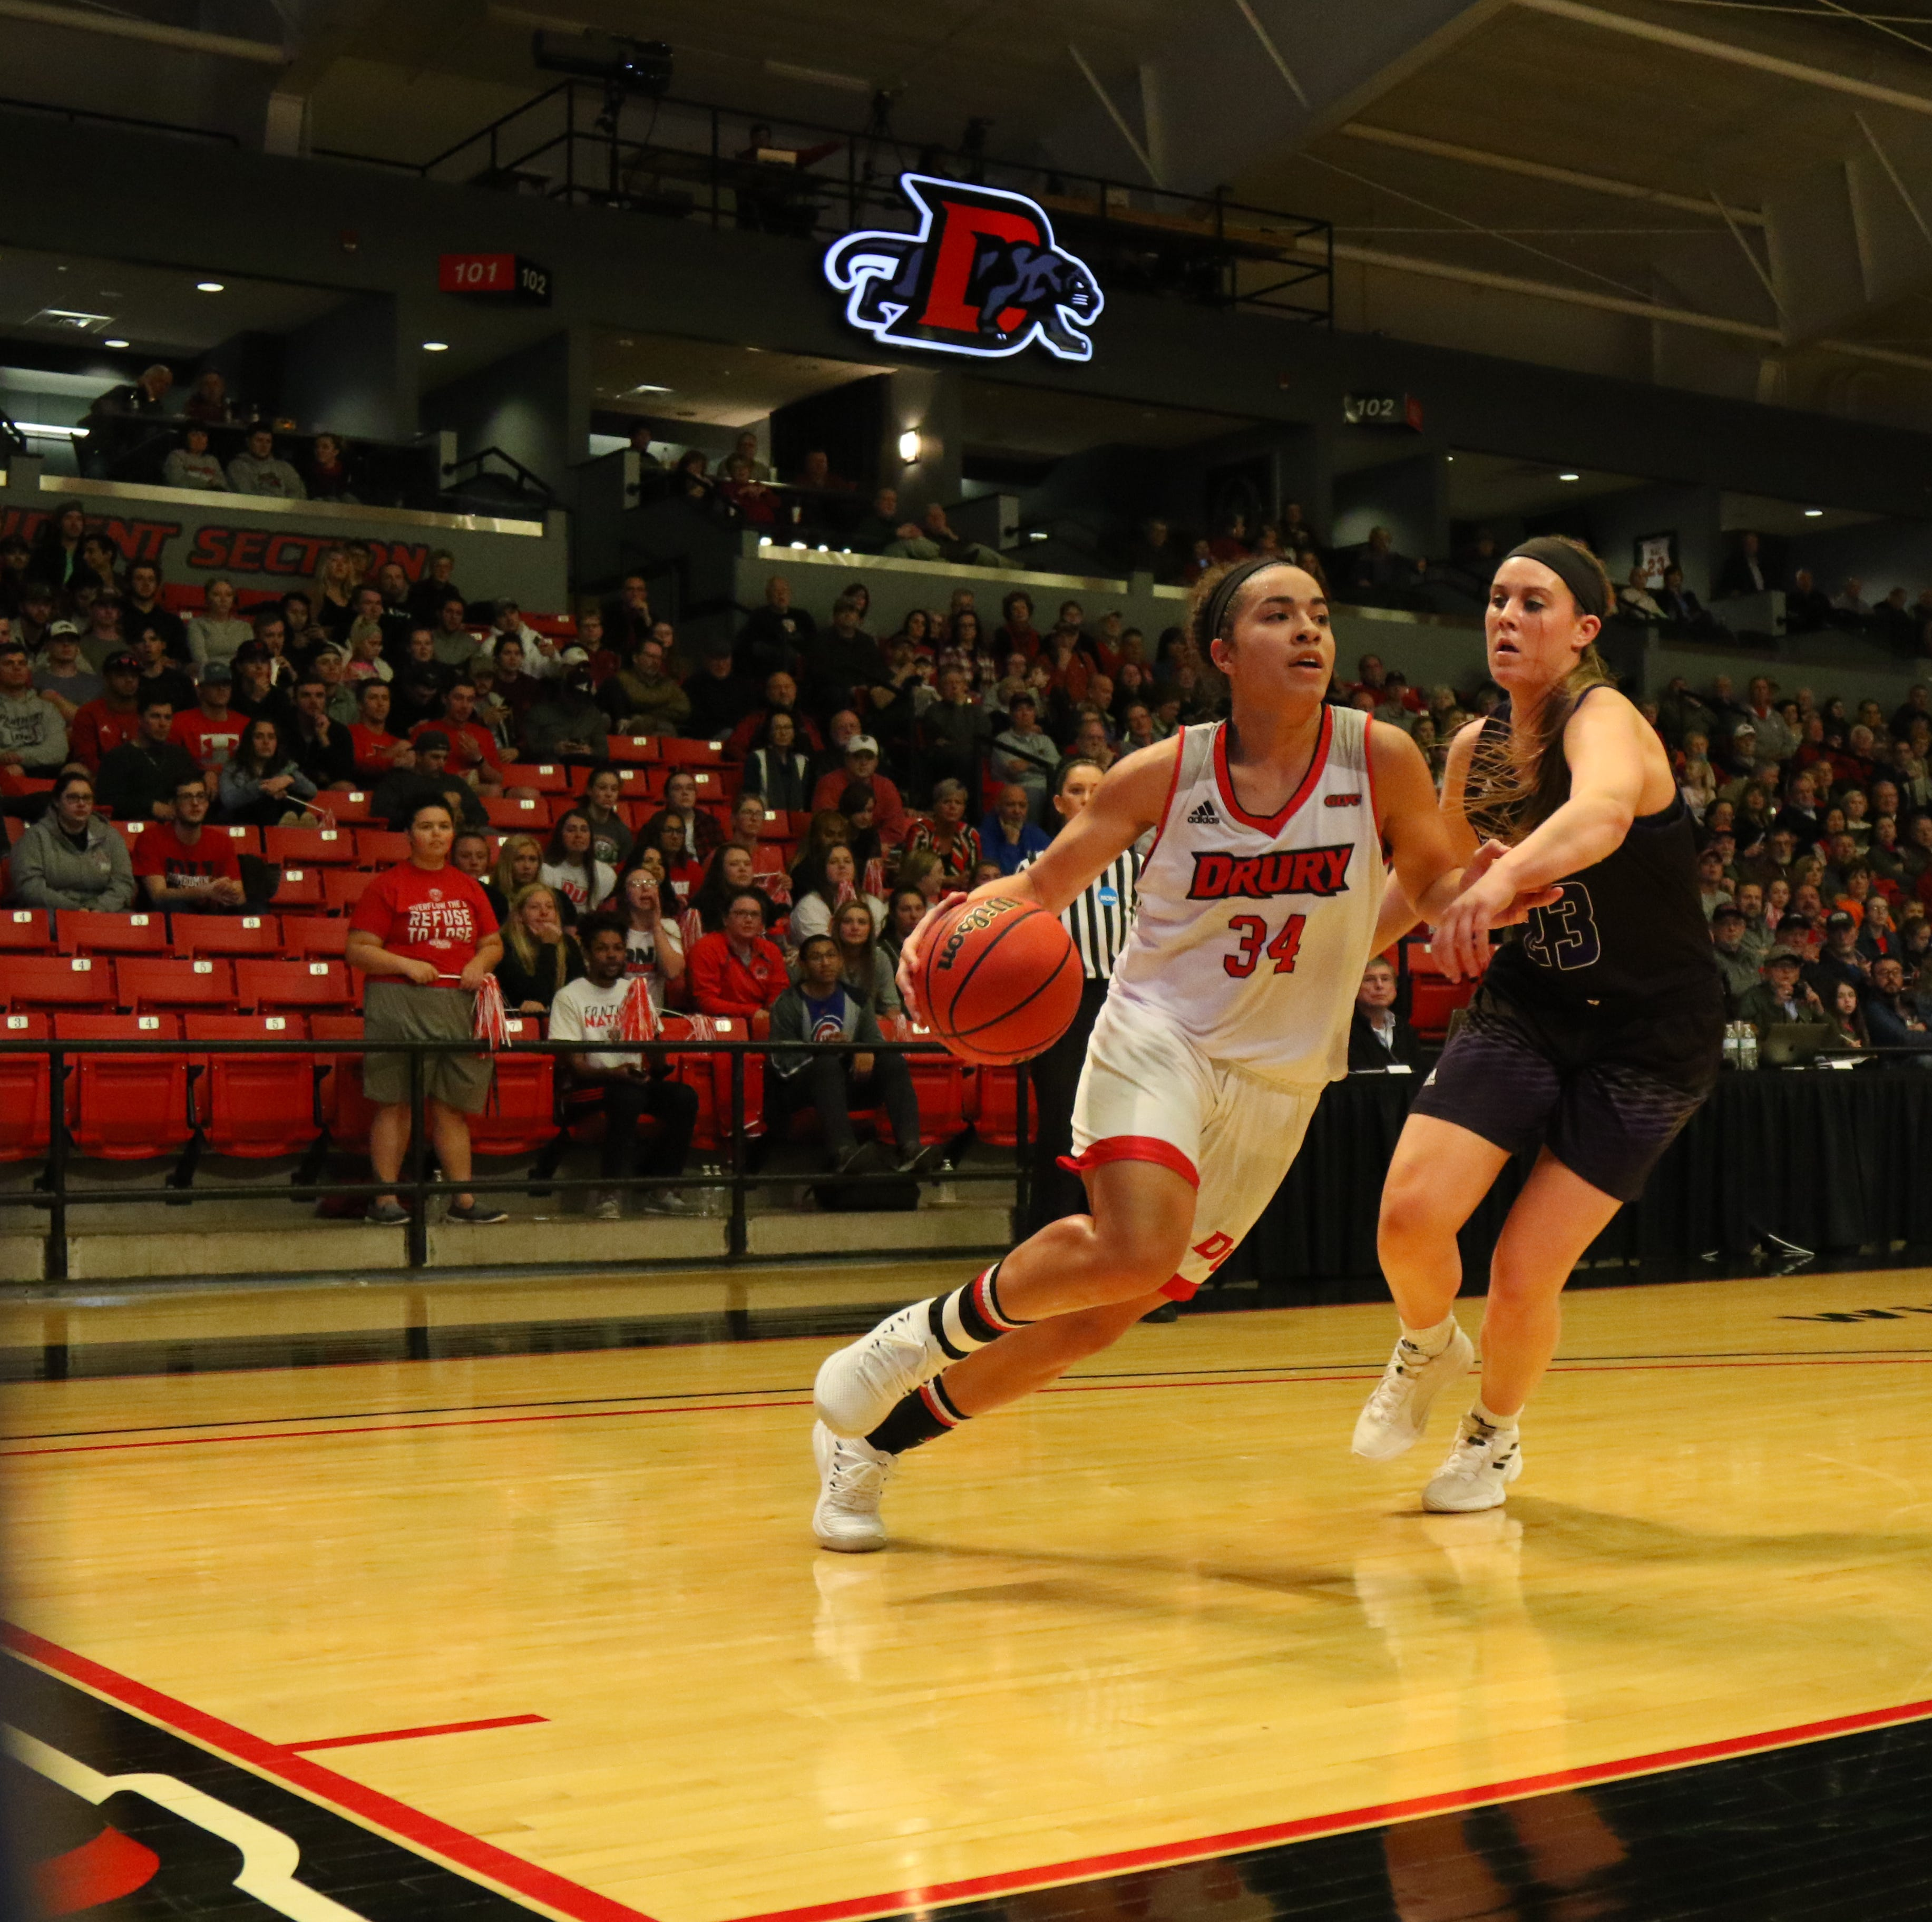 Drury overcomes missing players in regional victory